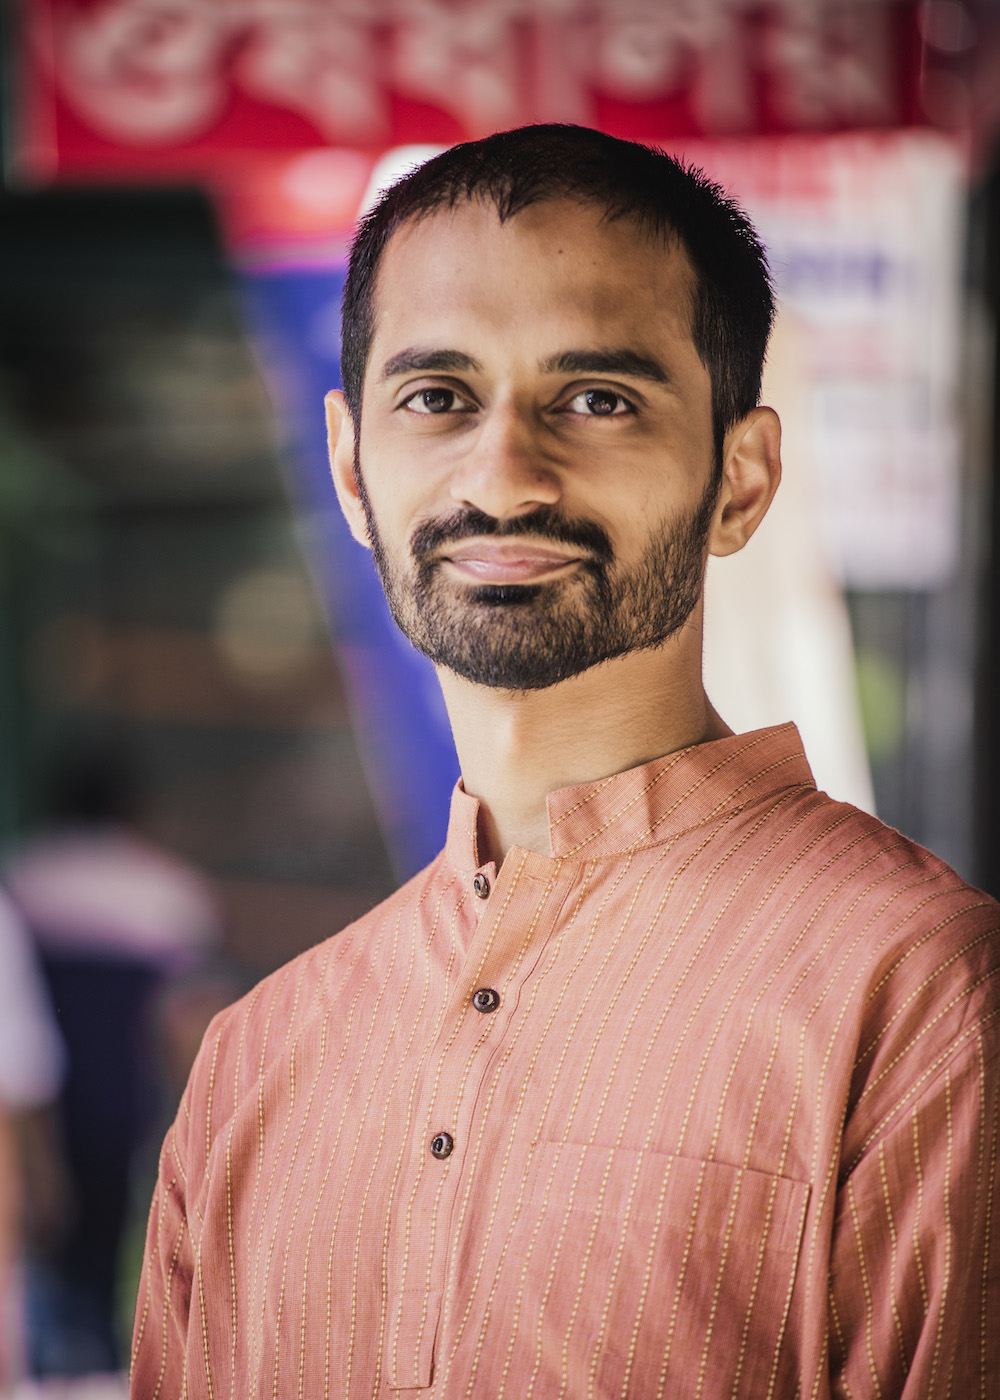 Fahd Ahmed, Executive Director, Desis Rising Up & Moving (DRUM), @DesisRisingUp